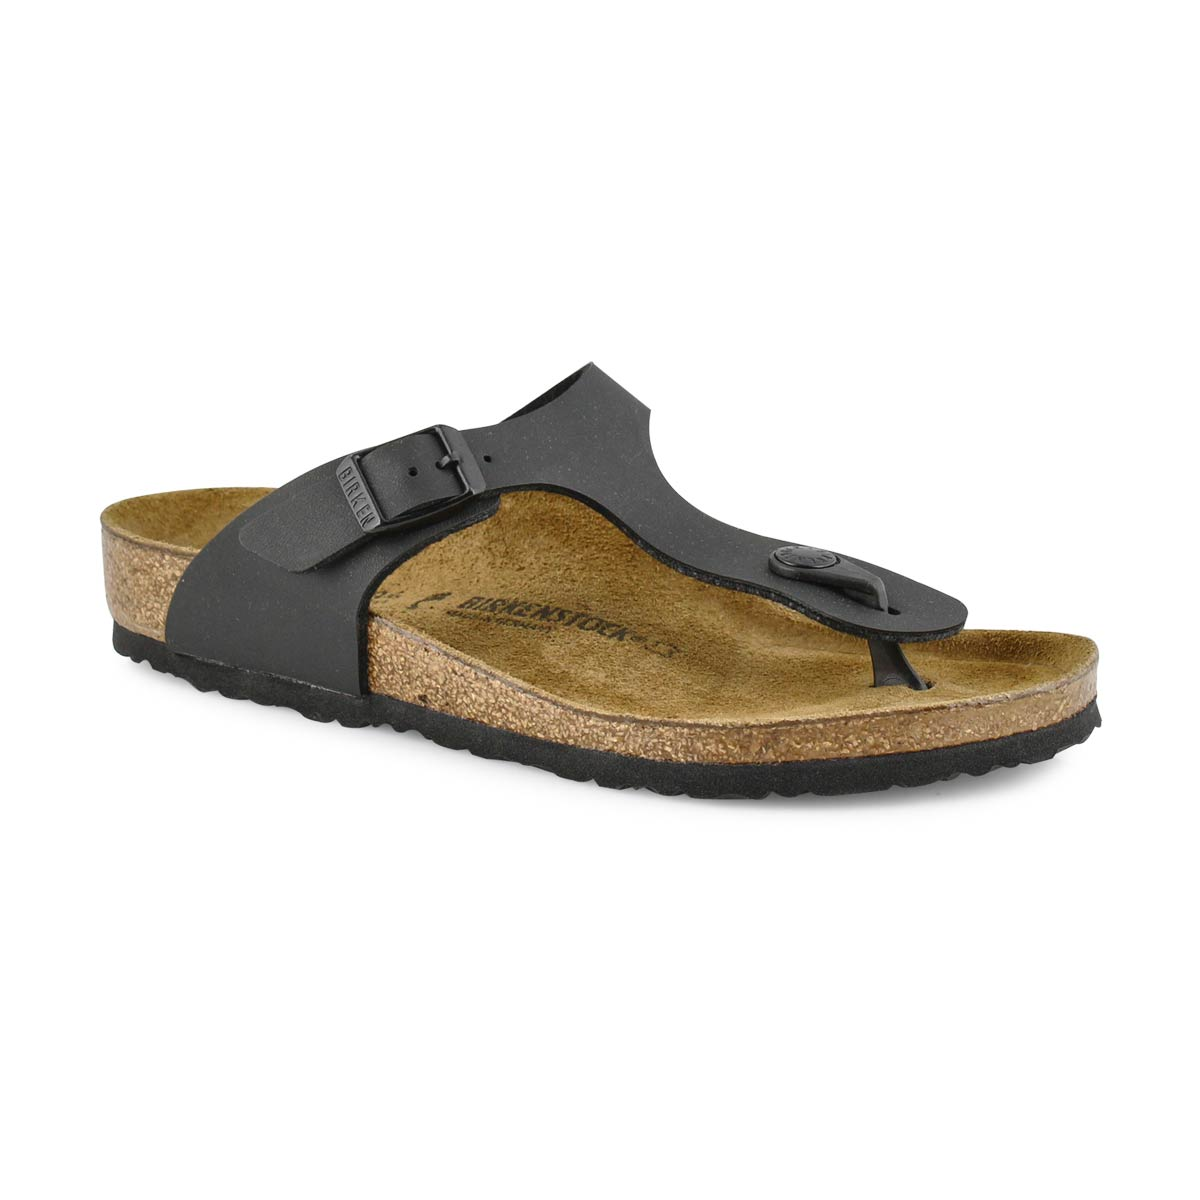 Girls' GIZEH black thong cork narrow sandals